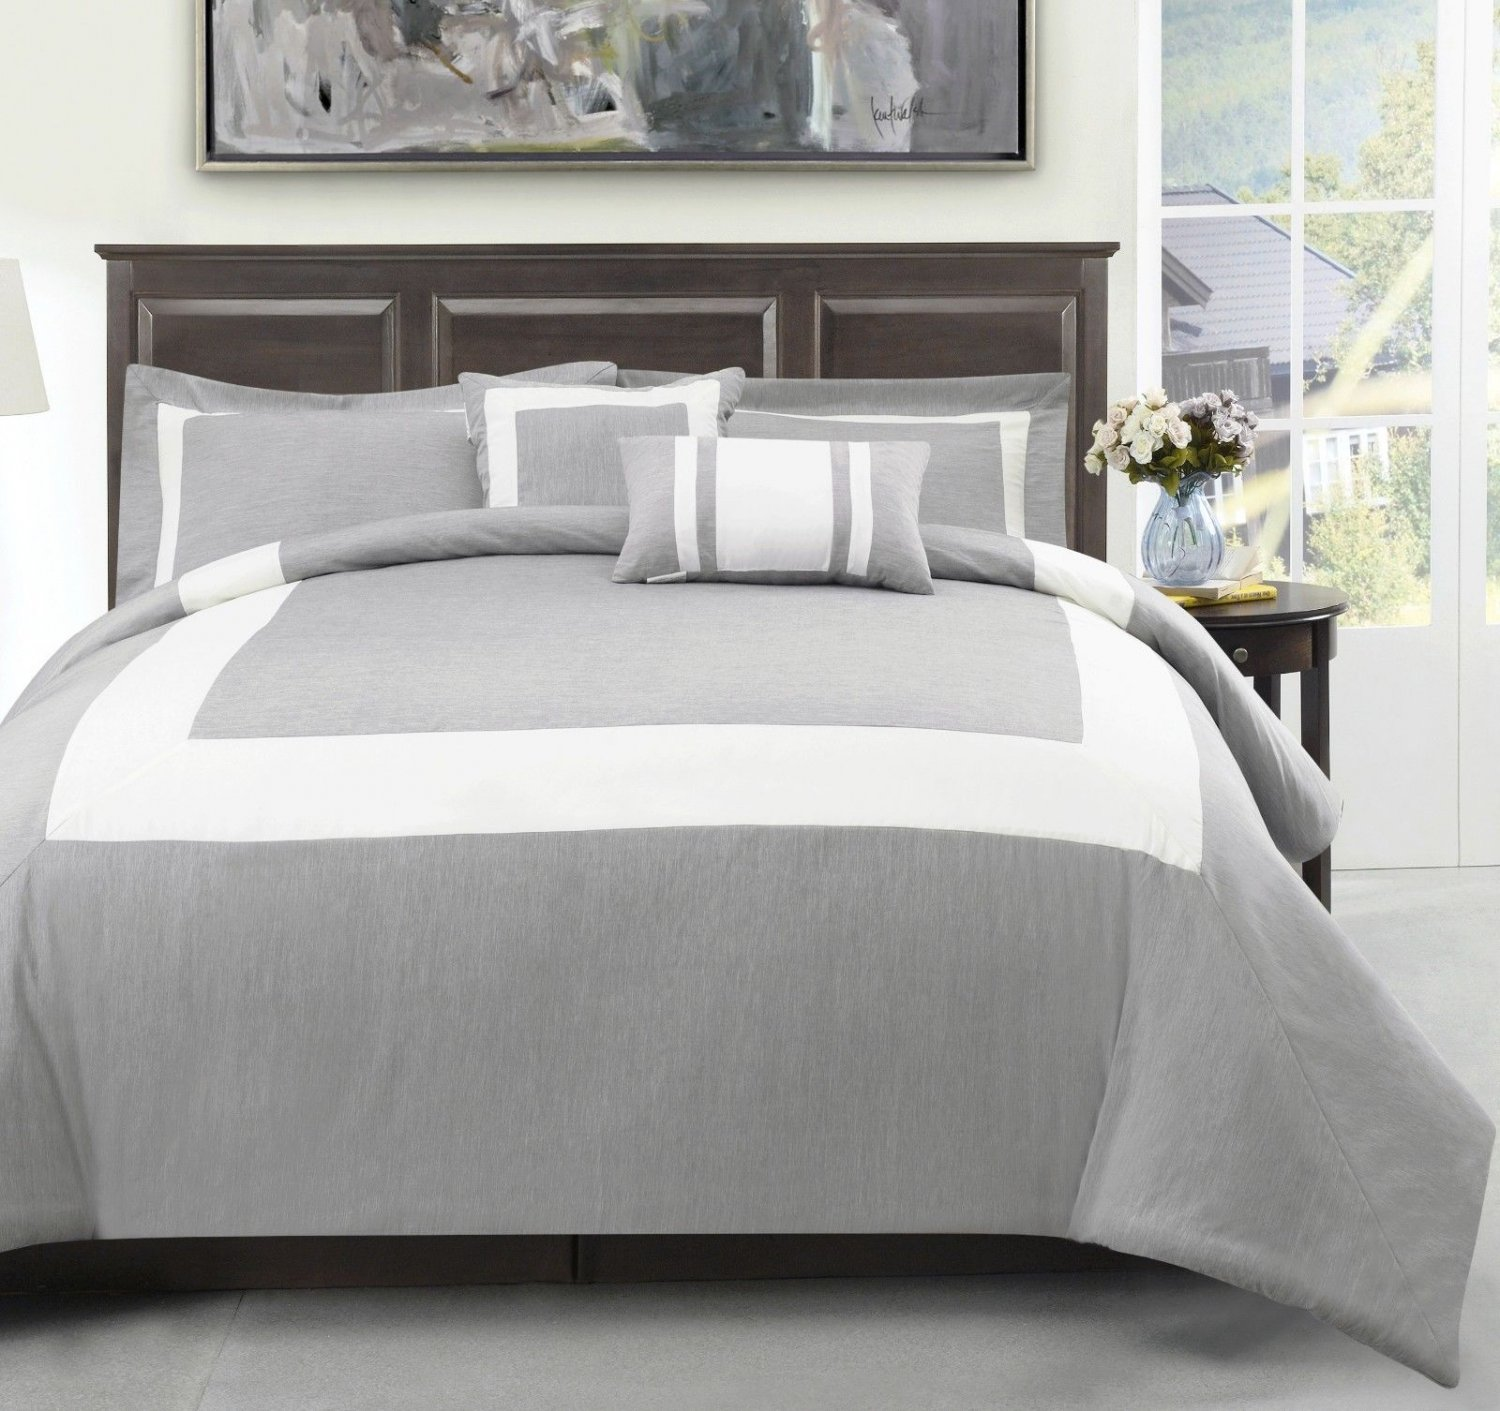 Forter 5pc Comforter Set, Light Grey, Ivory Stirpe Bedding, All size Bed Cover